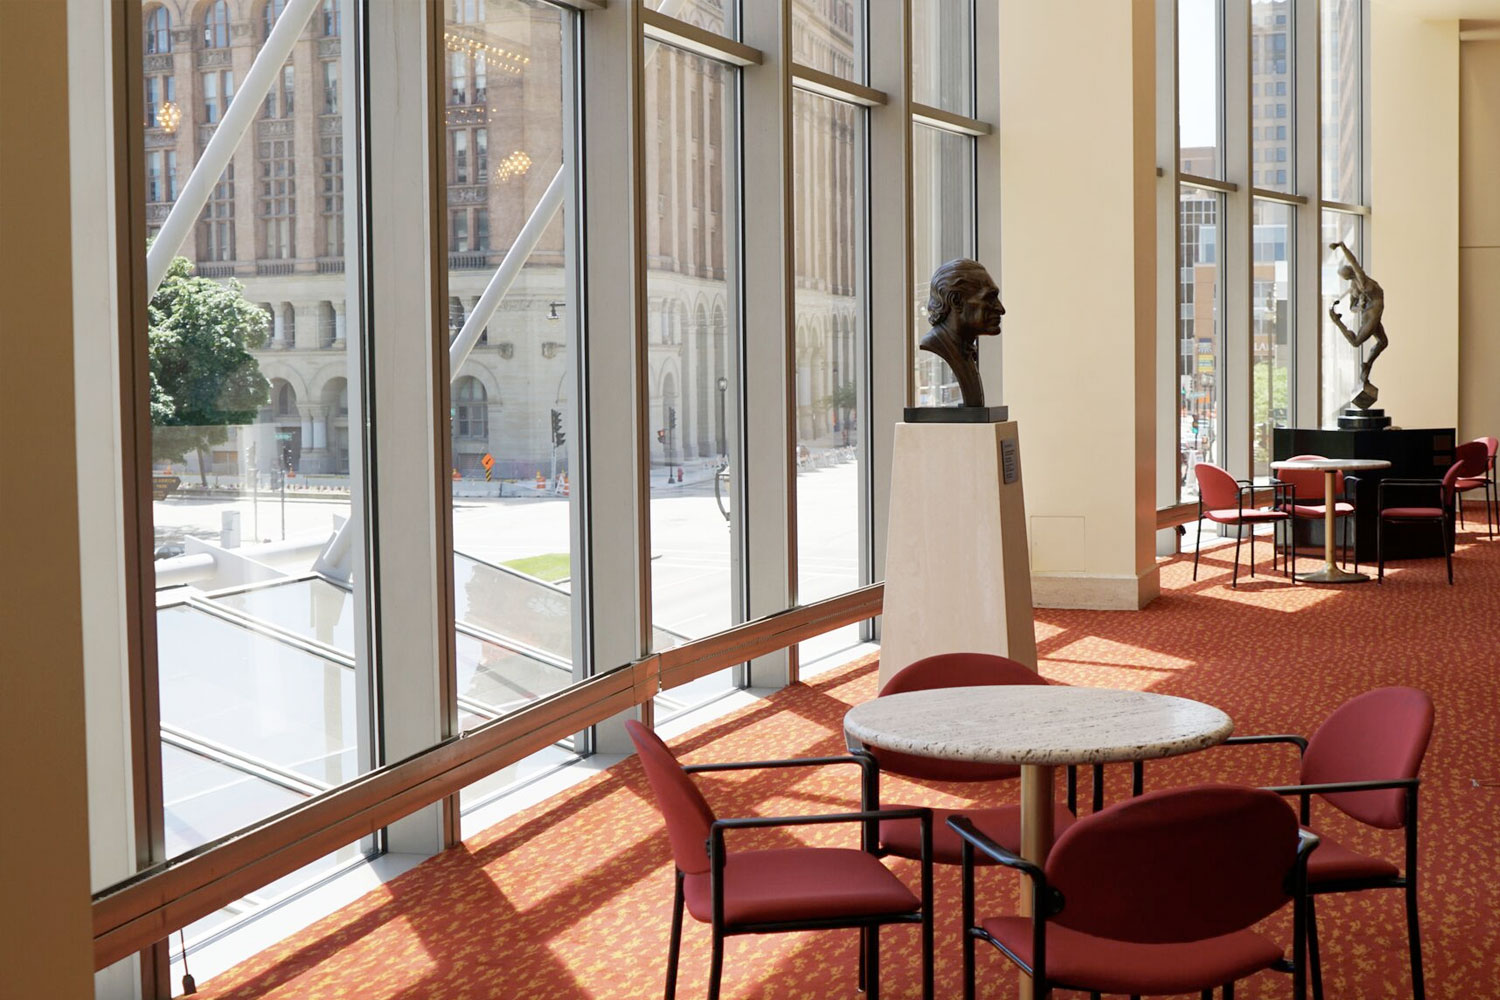 Anello Atrium & Magin Lounge at the Marcus Center a rental space in downtown Milwaukee